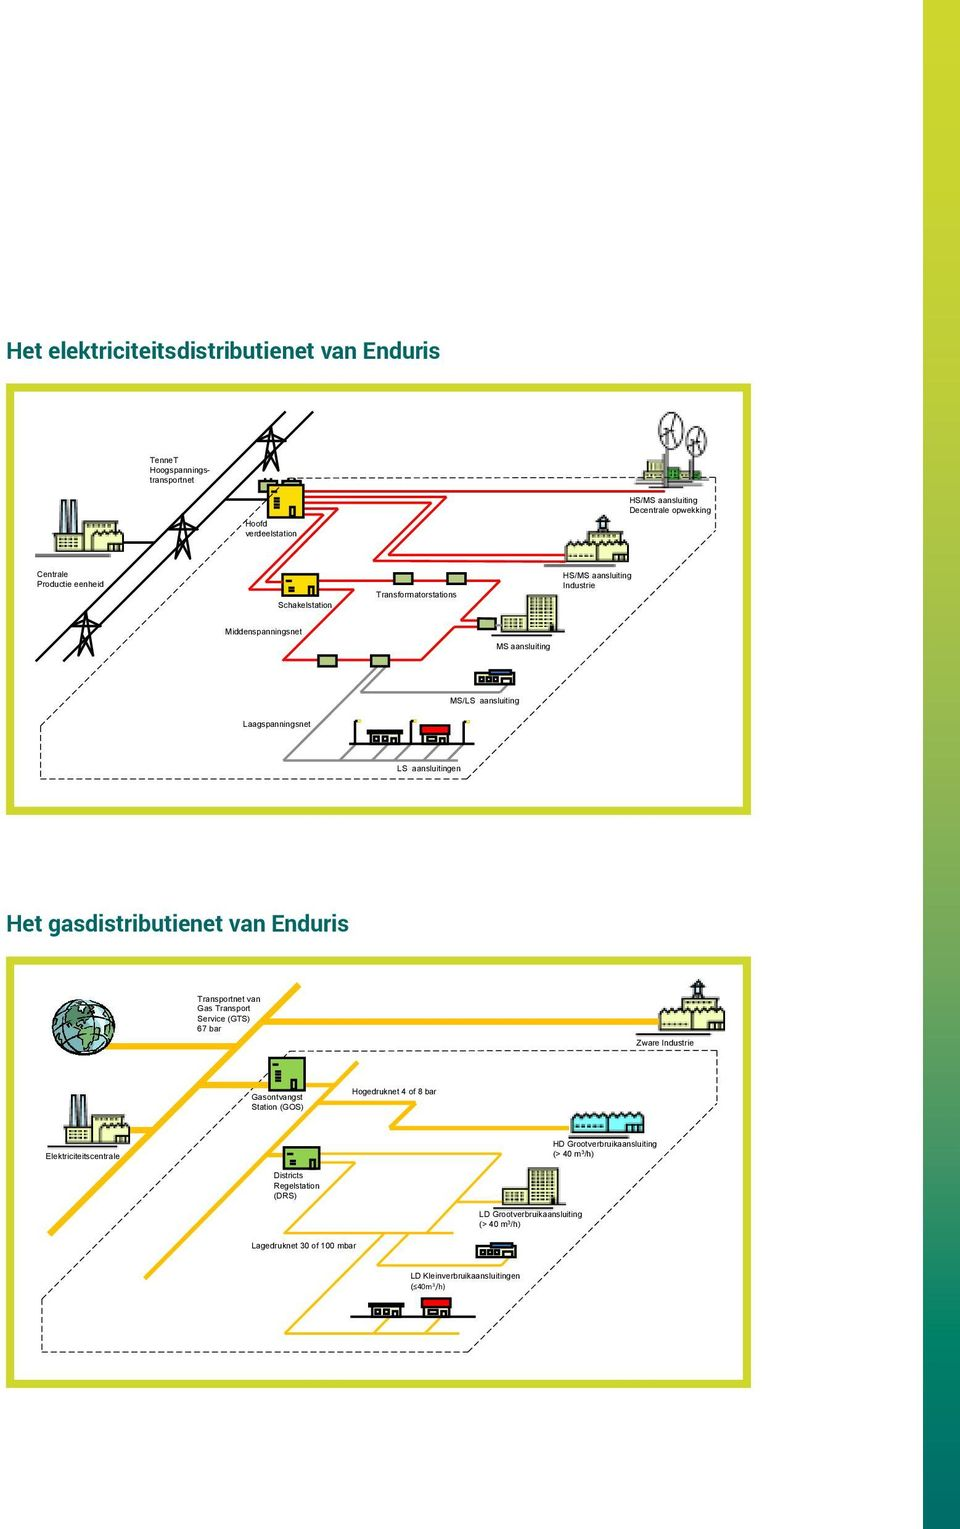 gasdistributienet van Enduris Transportnet van Gas Transport Service (GTS) 67 bar Zware Industrie Gasontvangst Station (GOS) Hogedruknet 4 of 8 bar